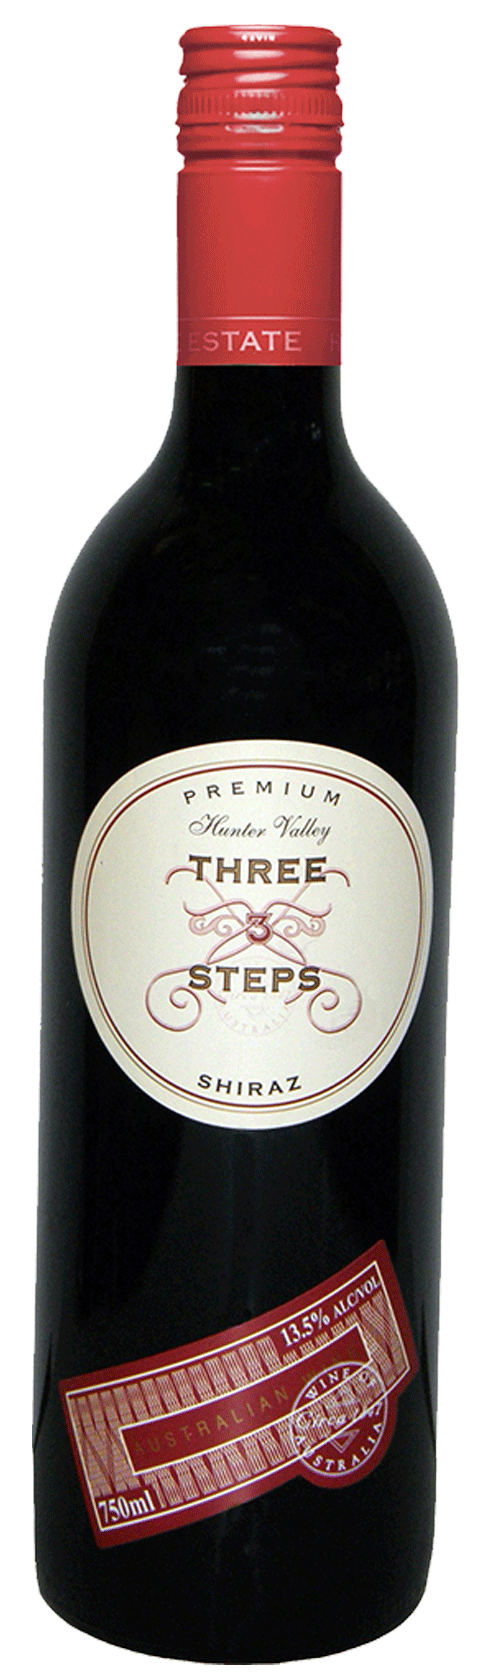 Three Steps Premium Shiraz 2014